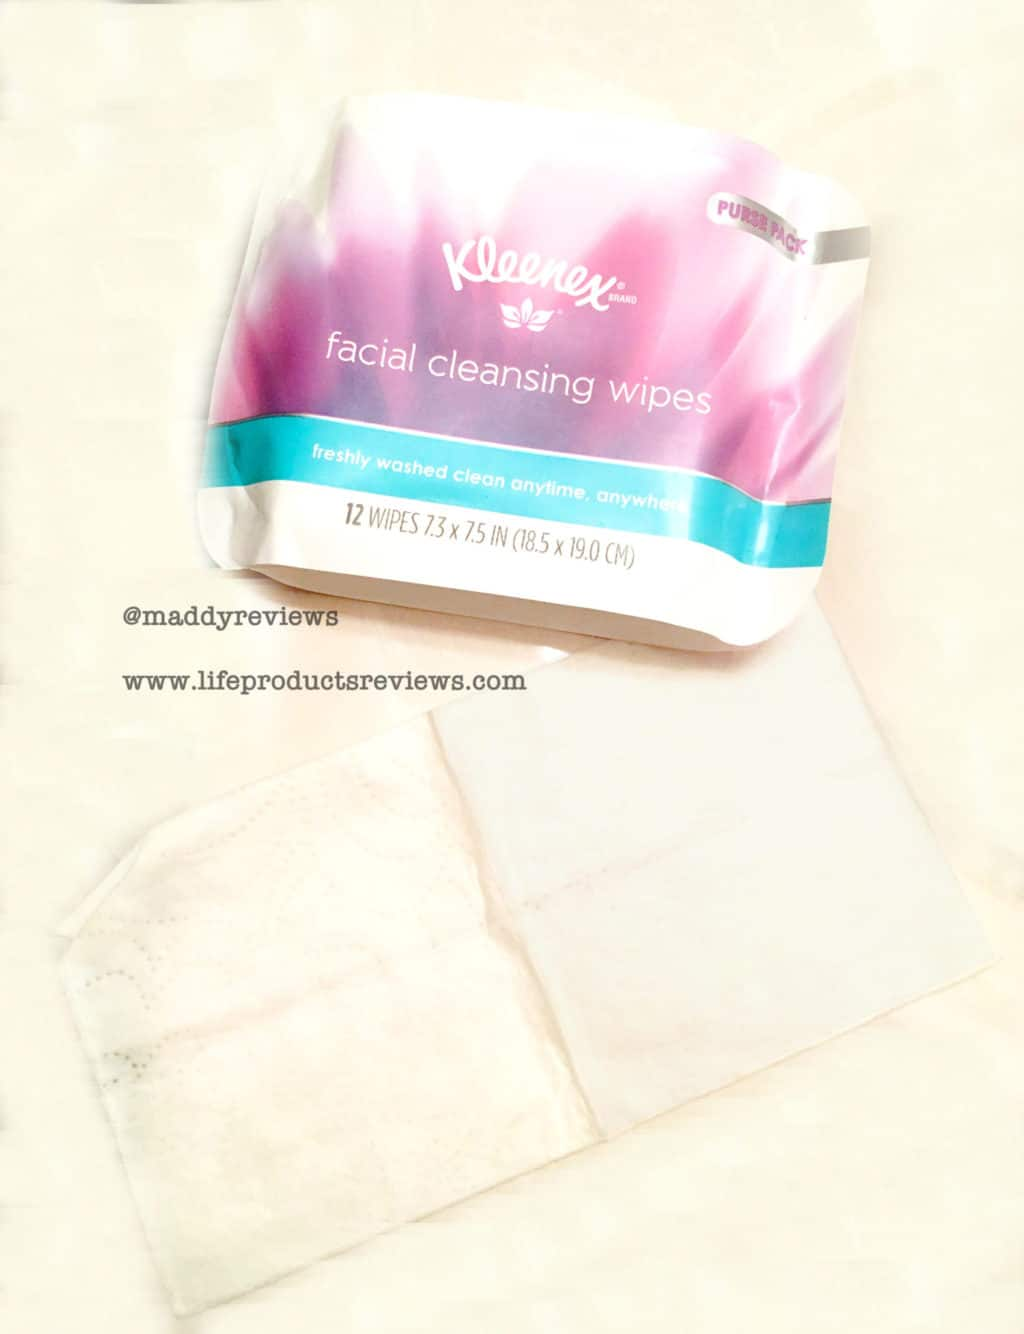 Kleenex facial wipes on the go demo